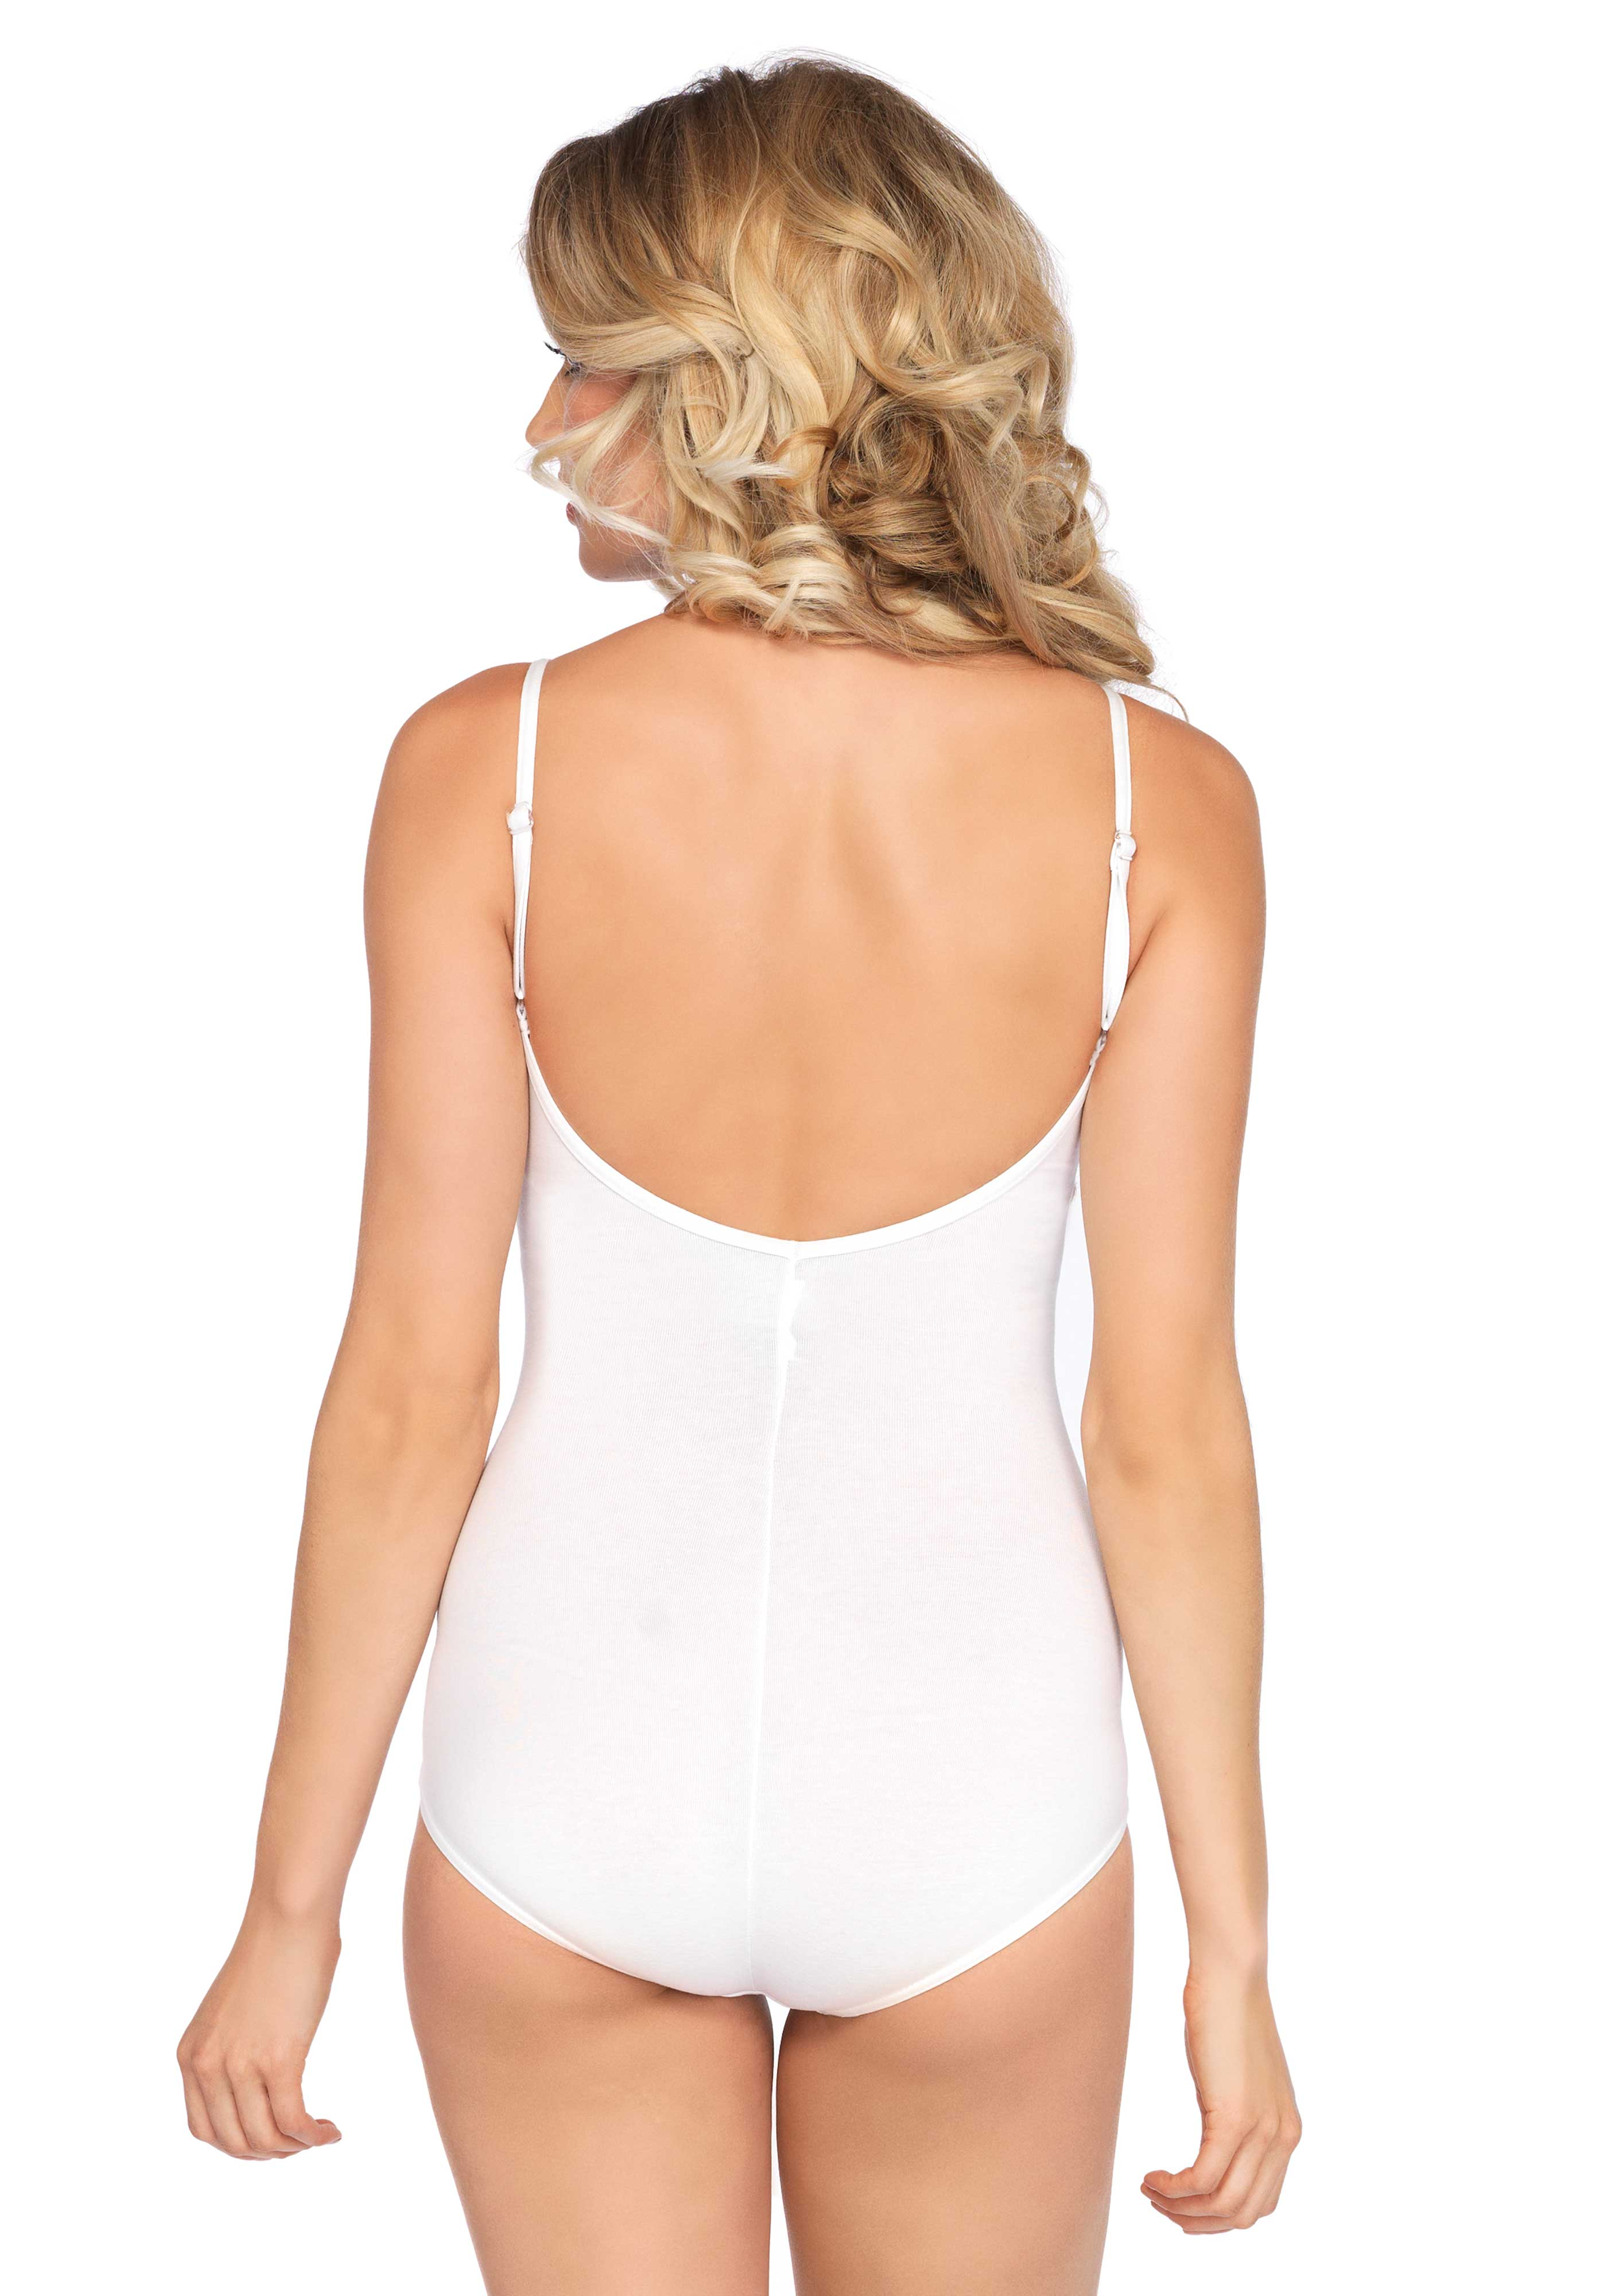 Opaque bodysuit with low back. Perfect for your basic garment.